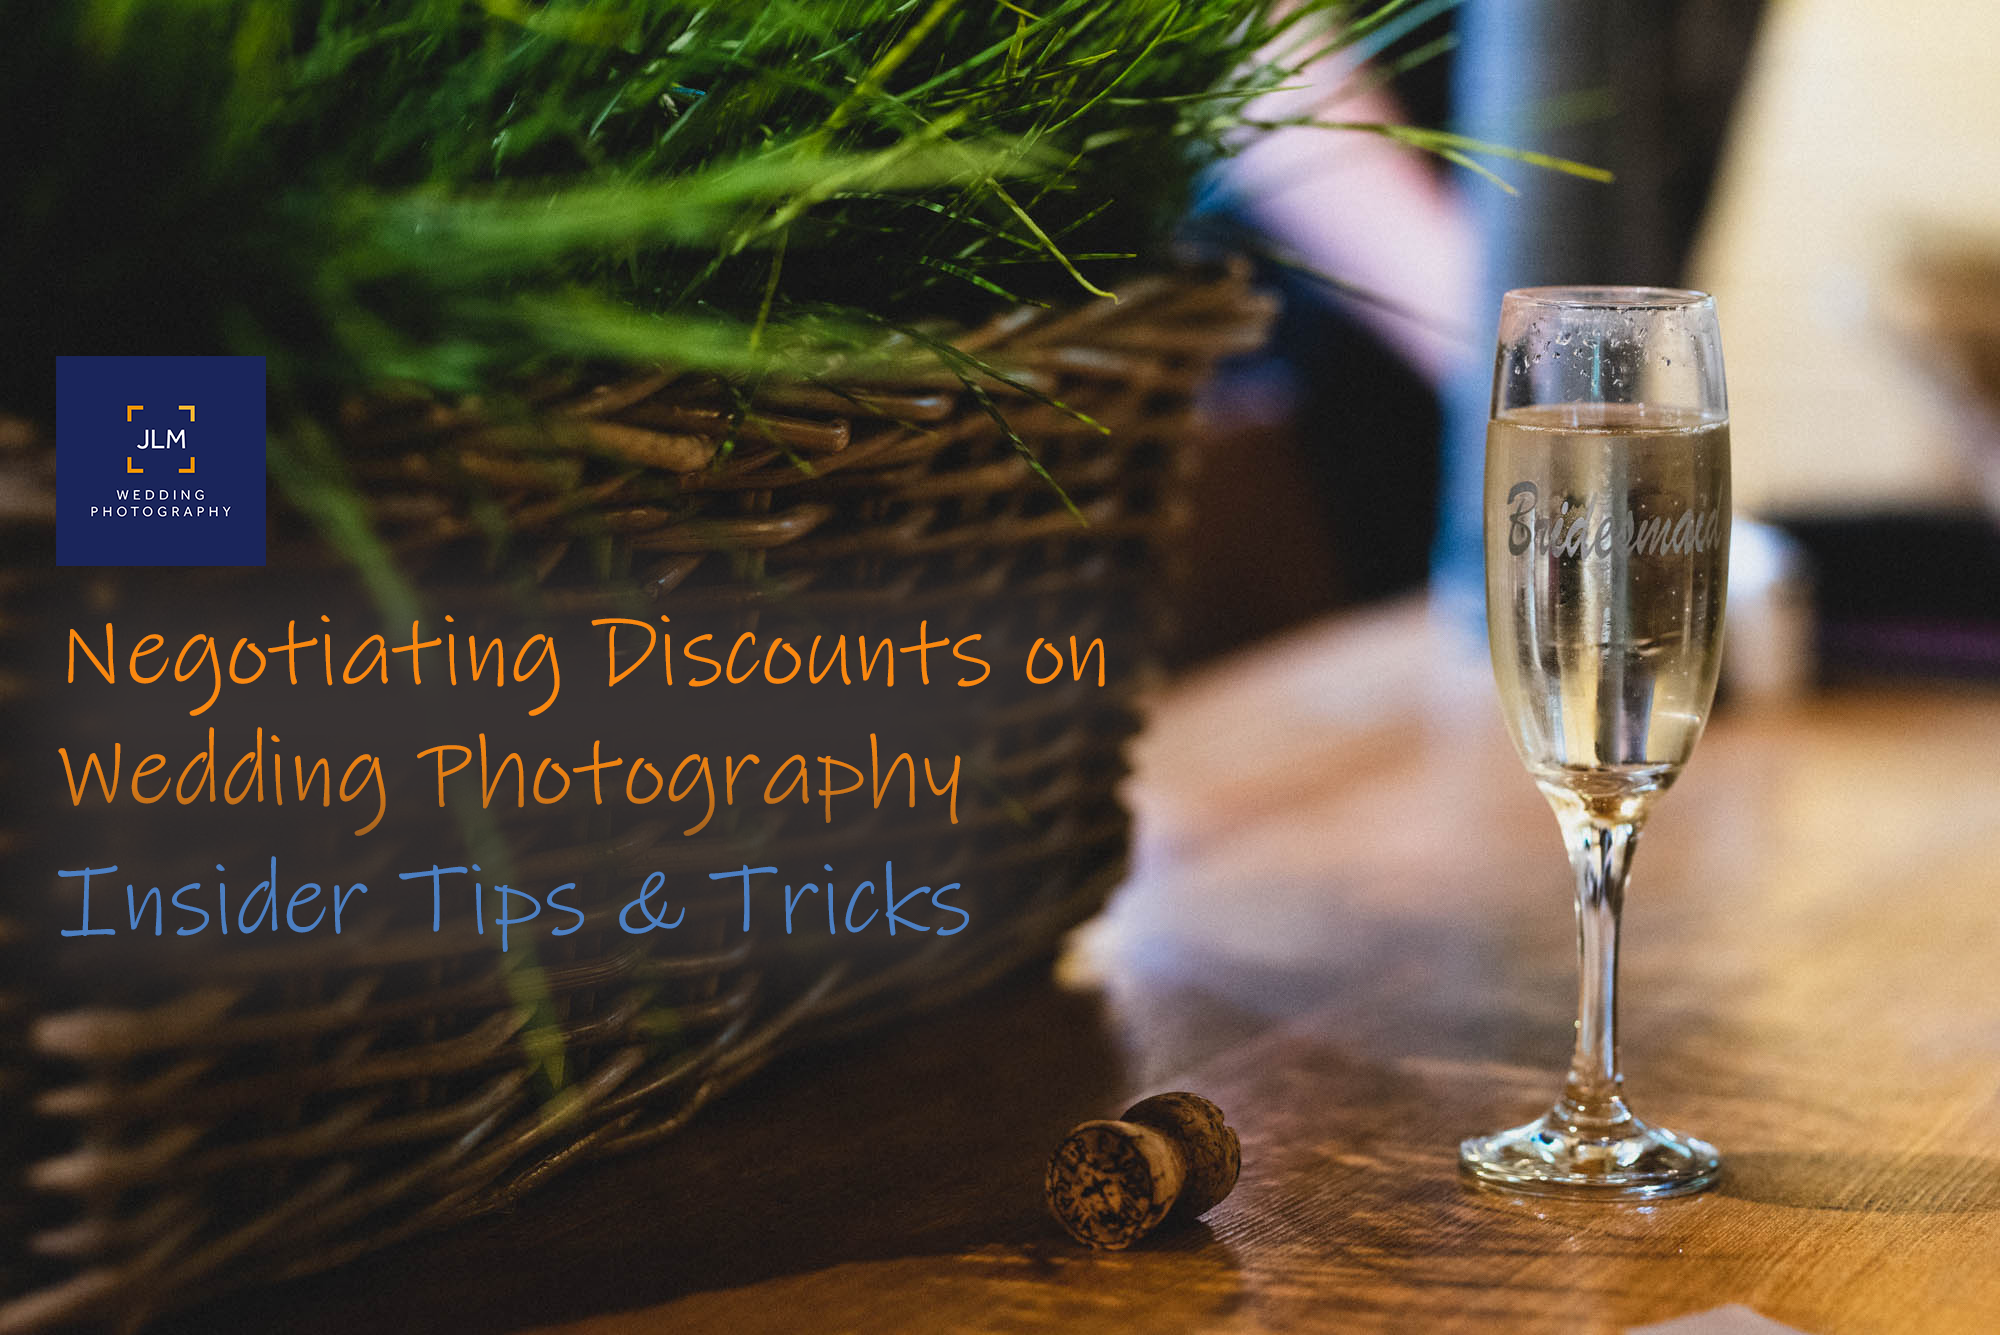 Negotiating Discounts on Wedding Photography